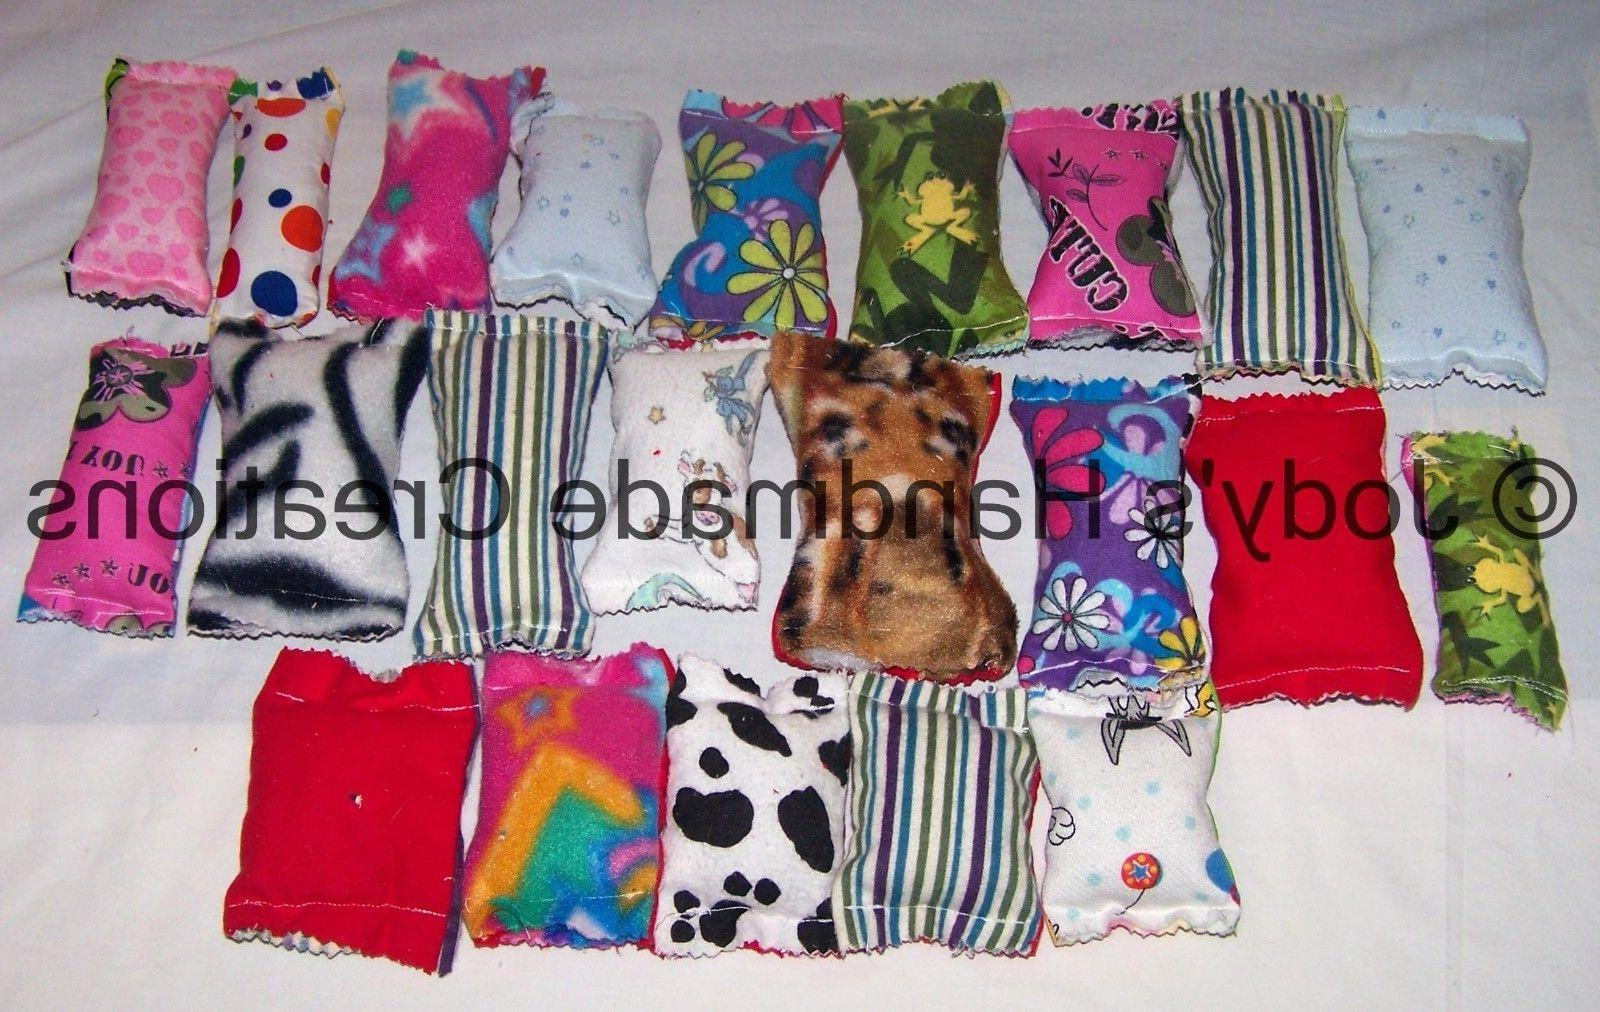 4 PILLOW TOYS SOLD!!!